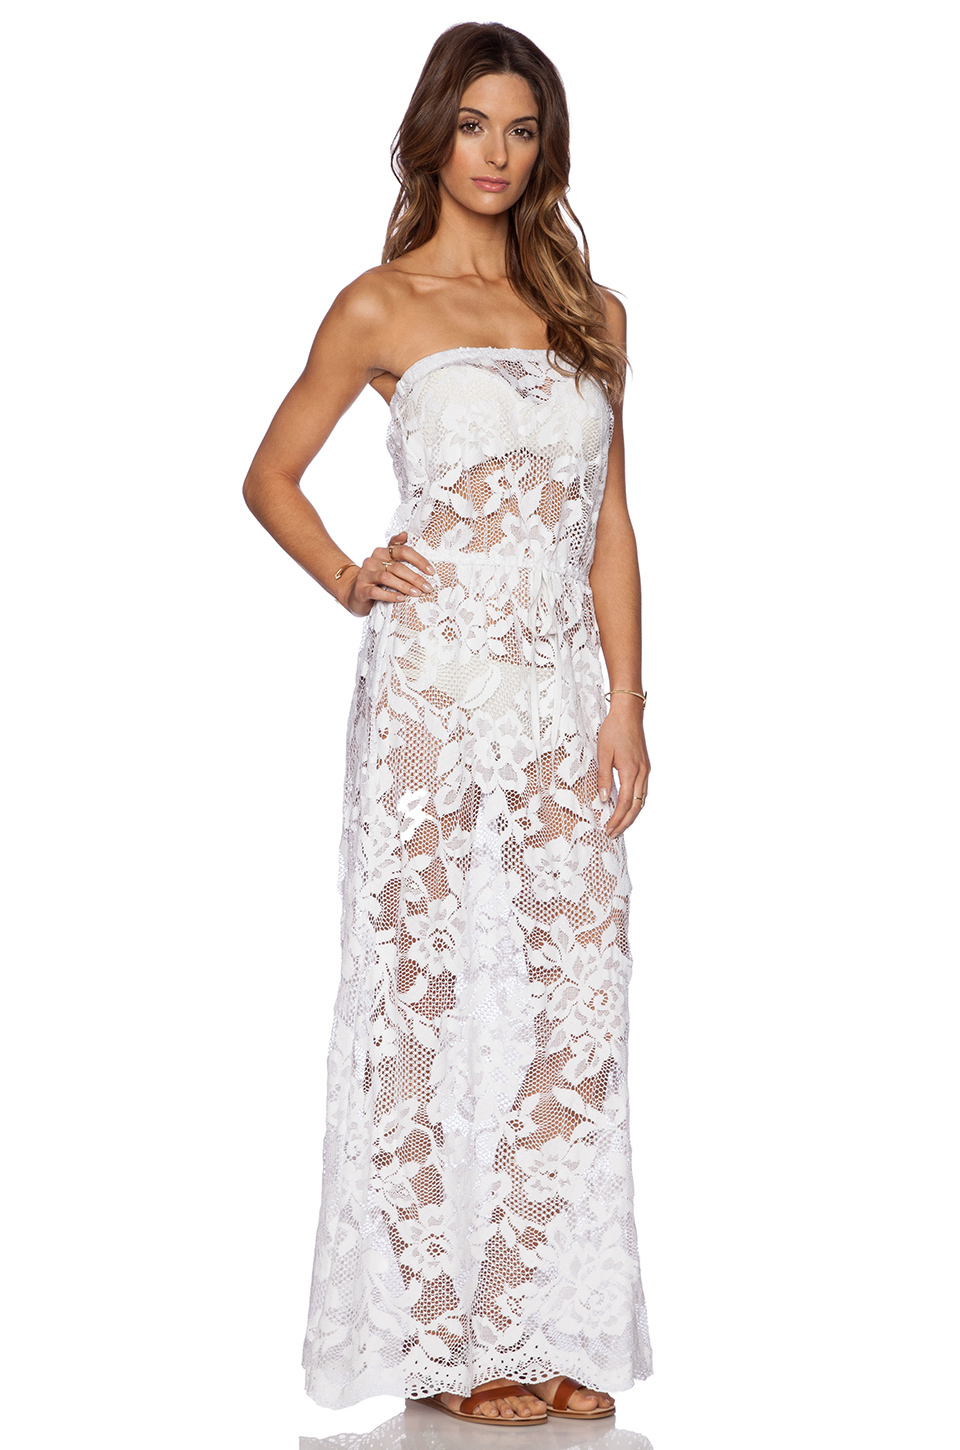 Lyst - Shoshanna White Lace Strapless Maxi Dress in White